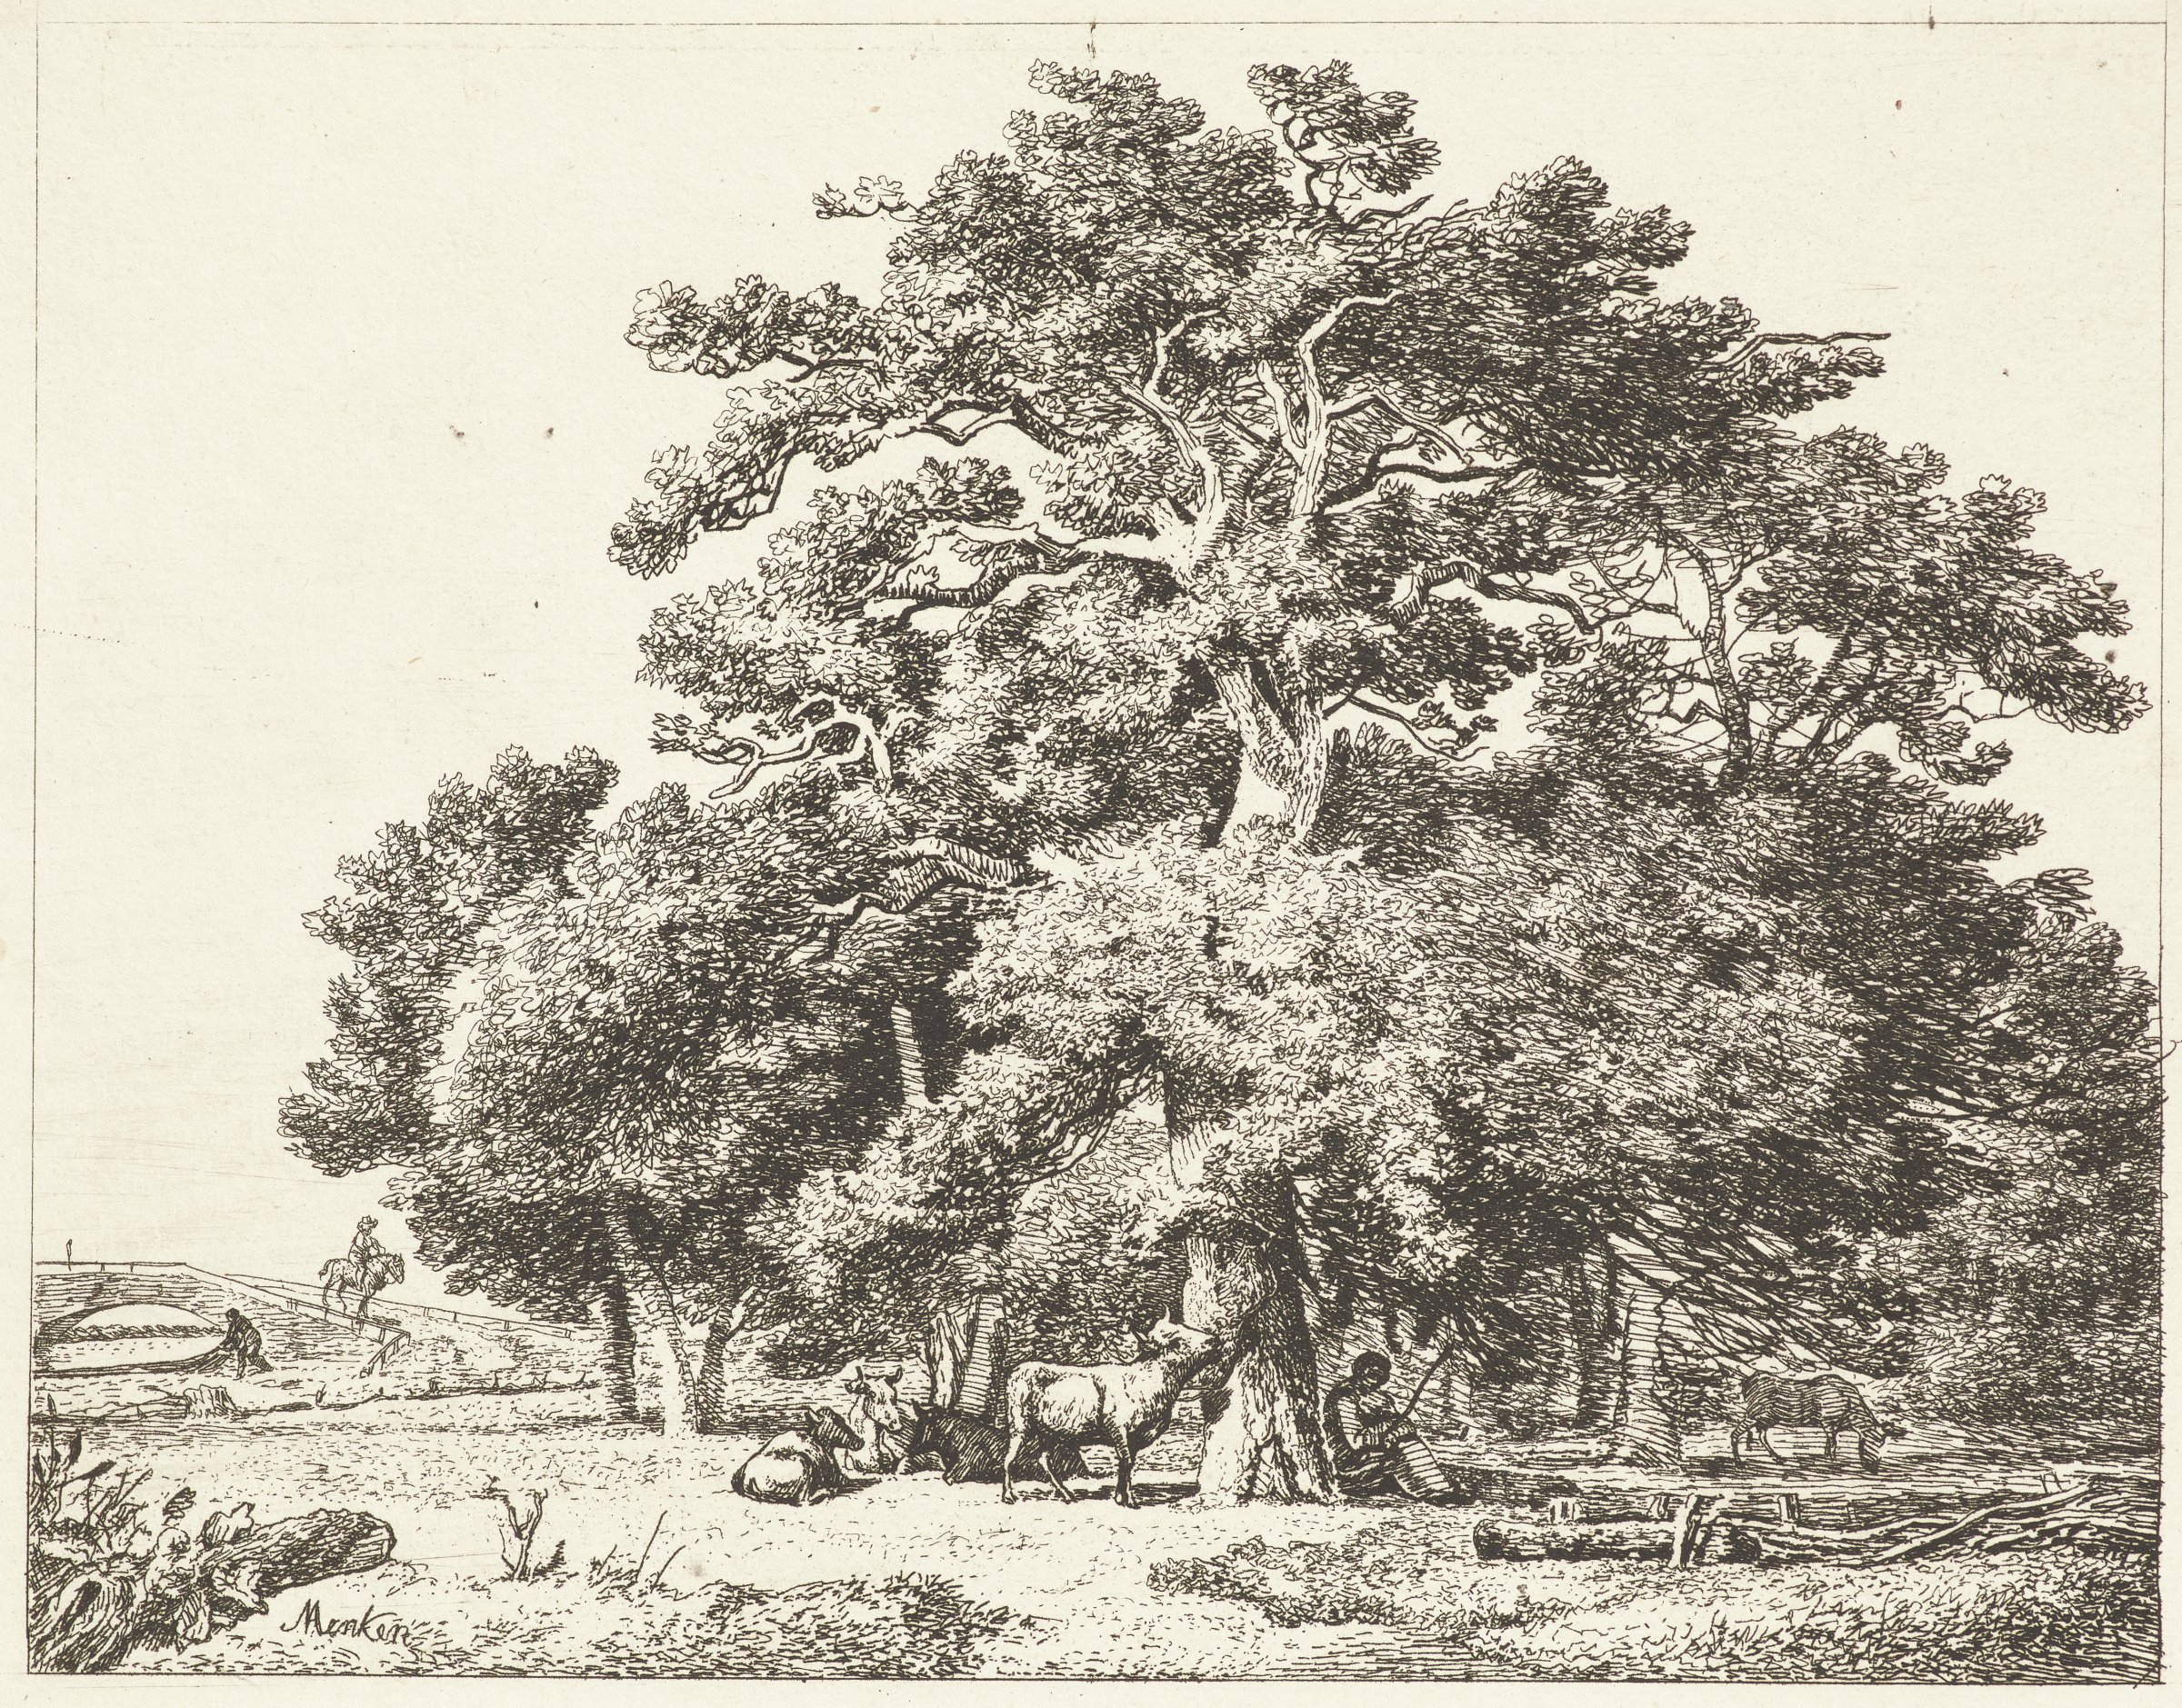 A figure sits underneath a grove of large trees. Cows graze and lay nearby.